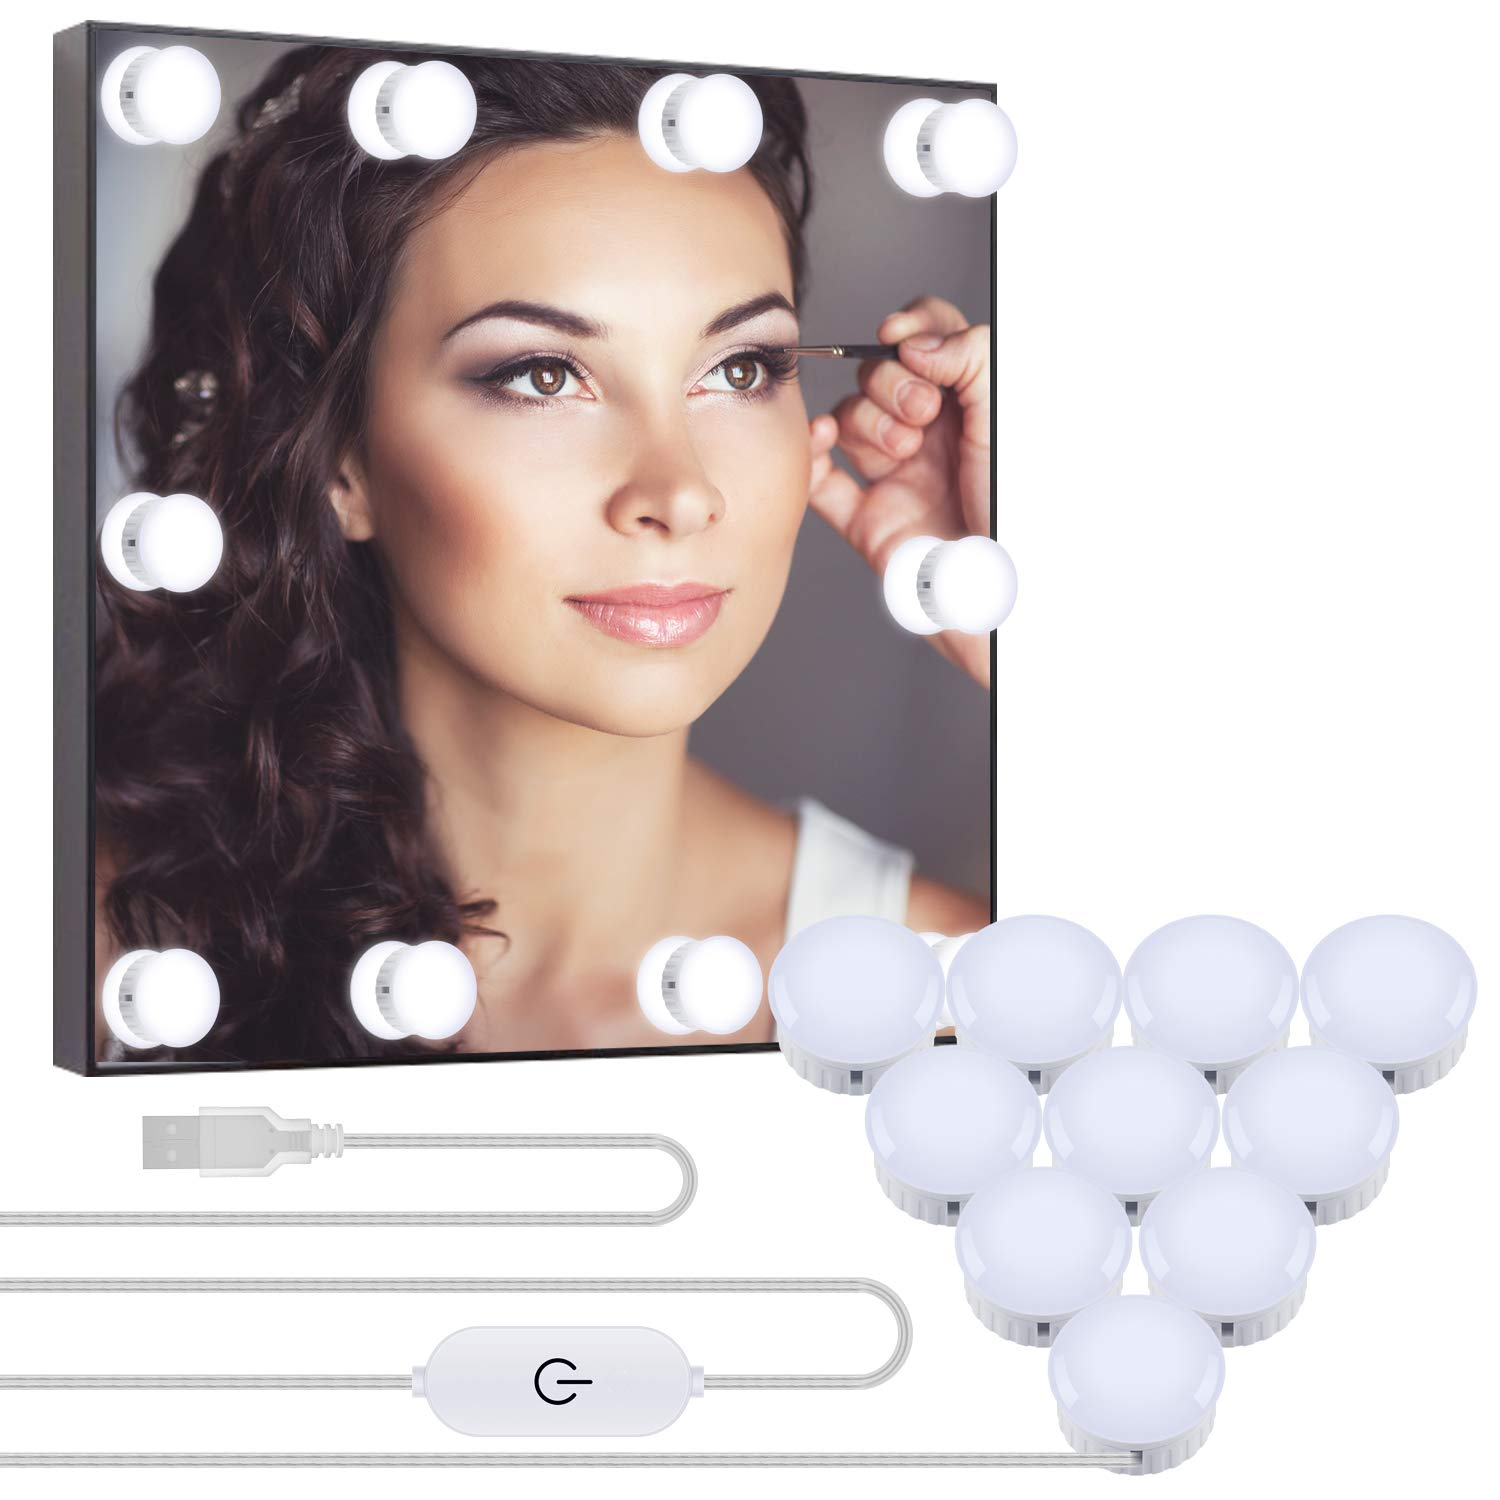 OUSFOT Vanity Mirror Lights USB Cable Hollywood Mirror Lights 10 Dimmable Bulbs LED Makeup Light 12.5ft Adjustable with 5 Brightness Modes (No Mirror and Plug)